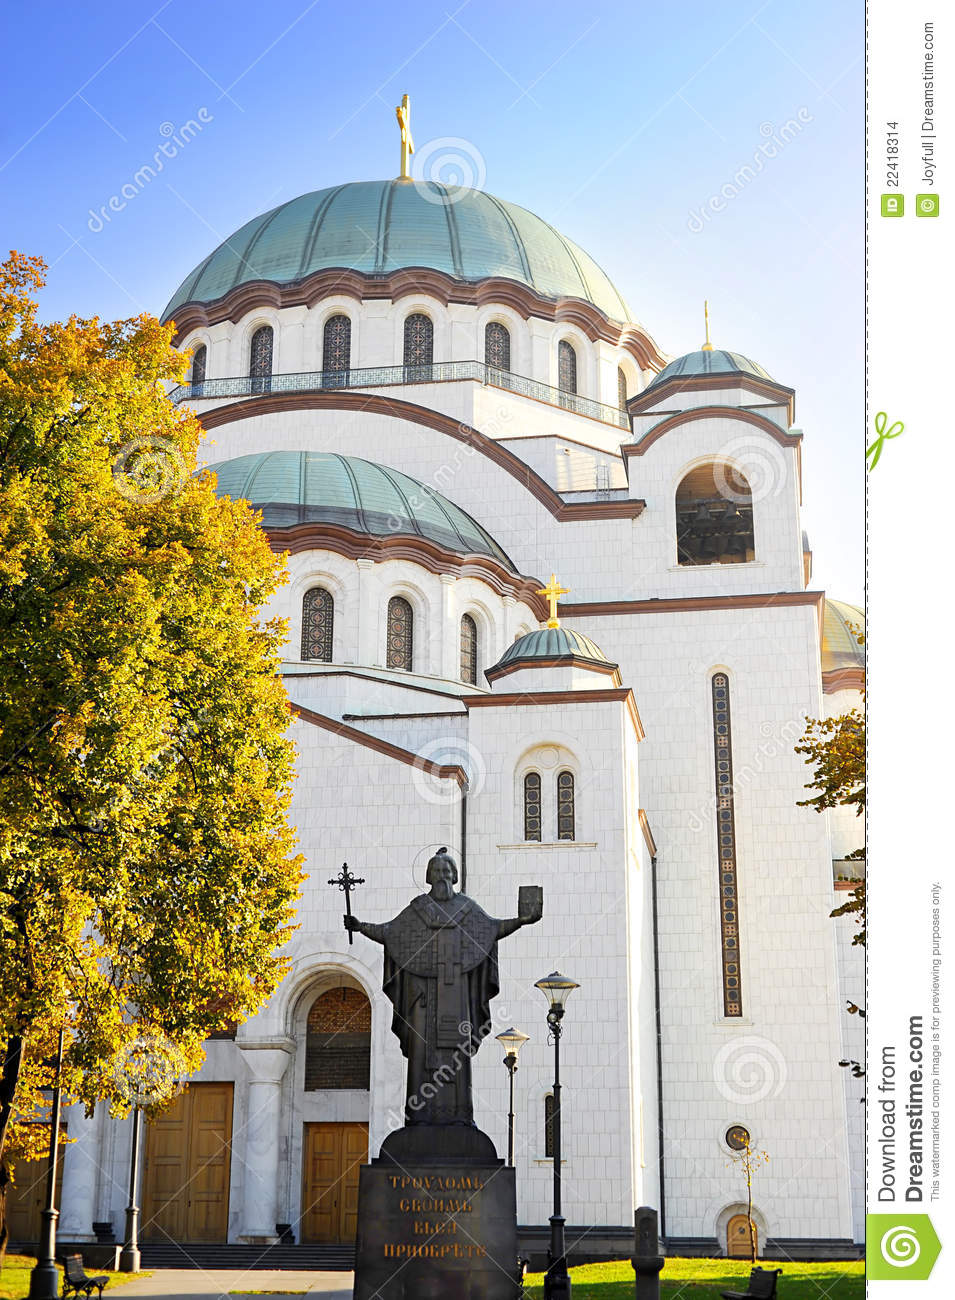 Cathedral Of Saint Sava Stock Images - Image: 22418314